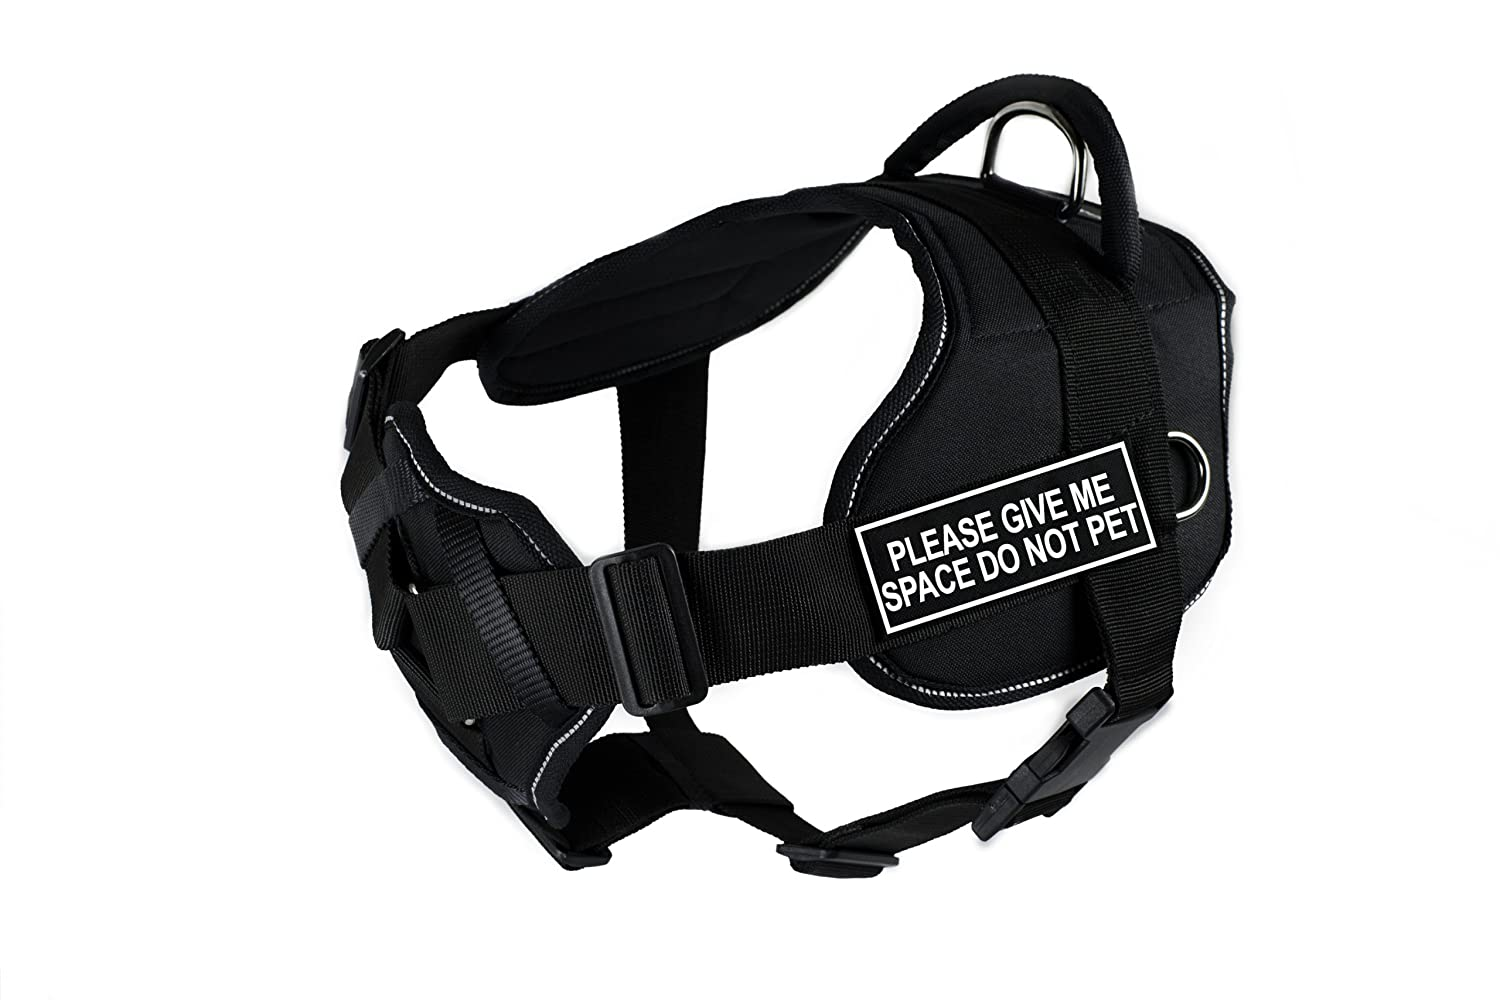 Dean & Tyler Fun Harness with Padded Chest Piece, Please Give Me Space Do Not Pet, Large, Black with Reflective Trim